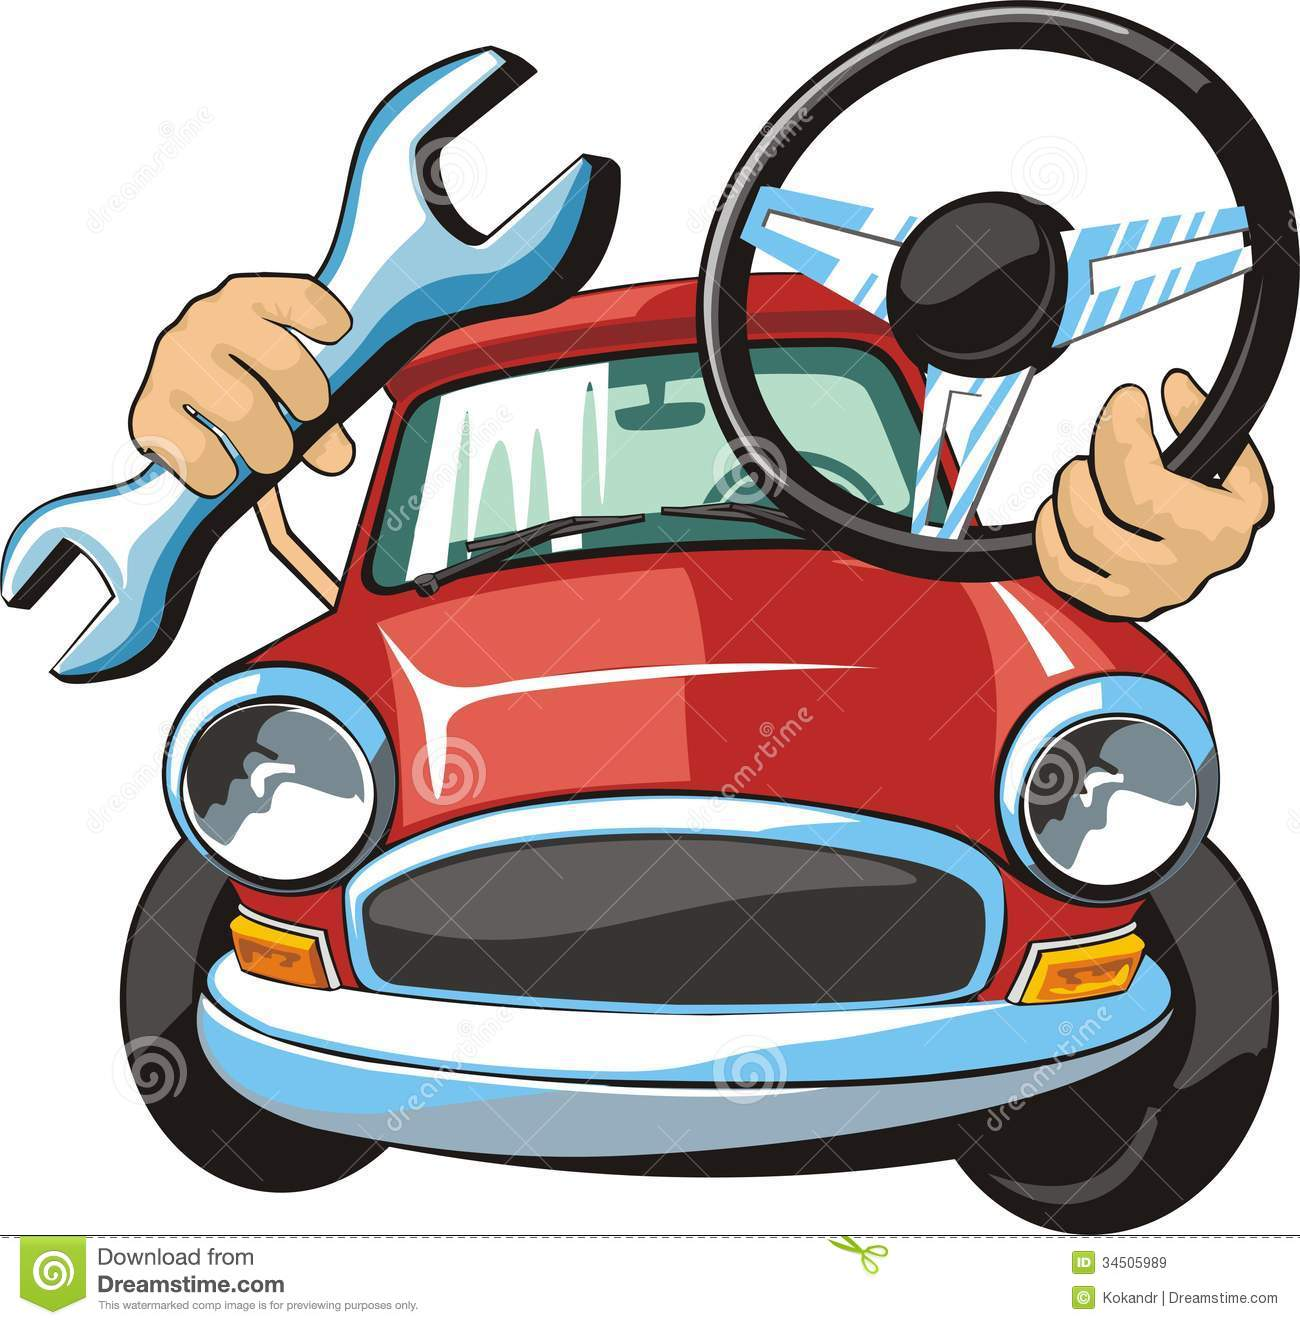 Car fix clipart picture freeuse Car steering fix | Clipart Panda - Free Clipart Images picture freeuse